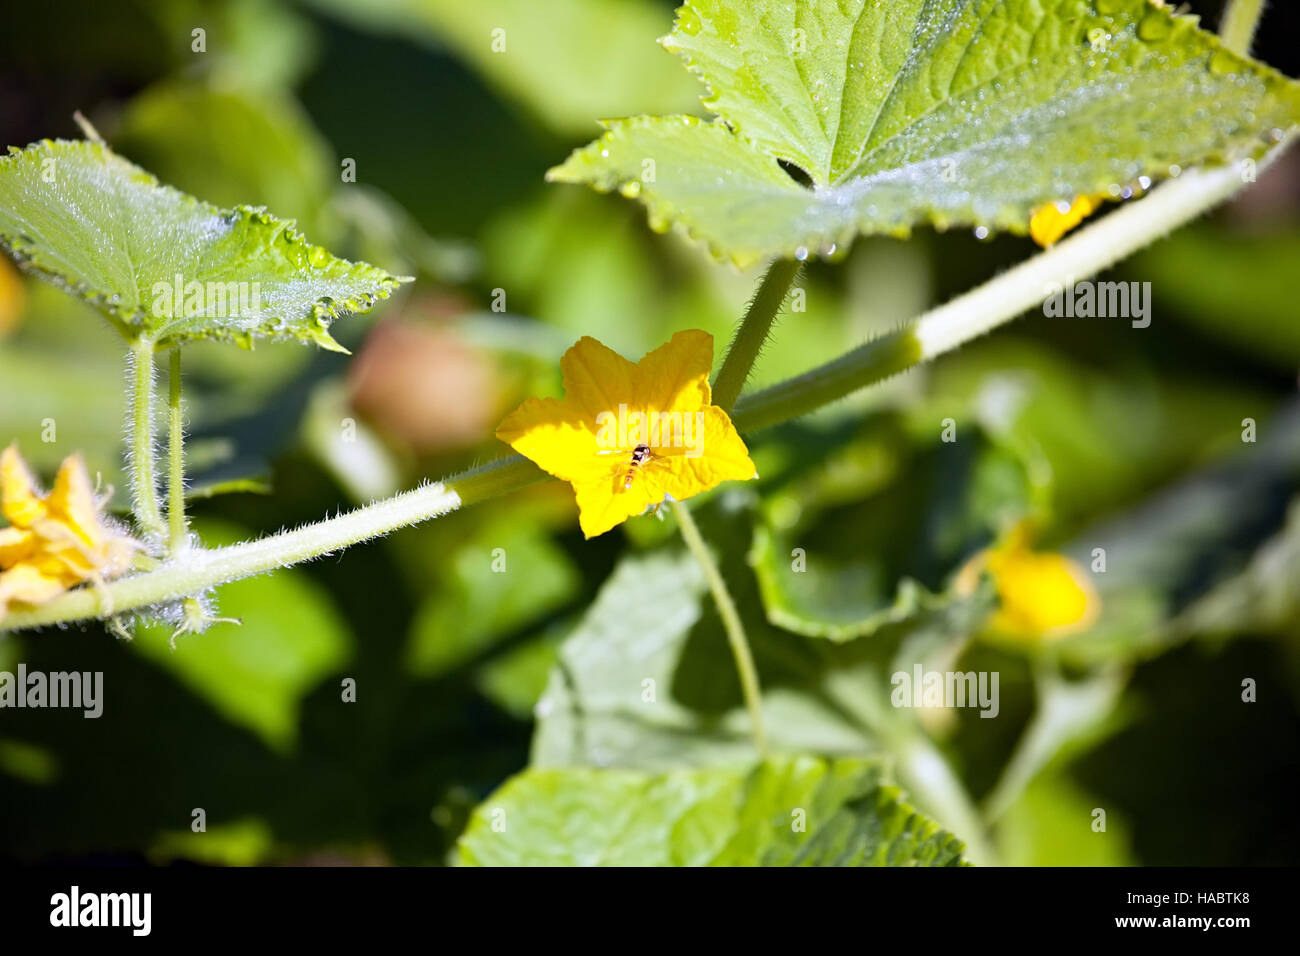 Small yellow cucumber flower on big green leaves background stock small yellow cucumber flower on big green leaves background mightylinksfo